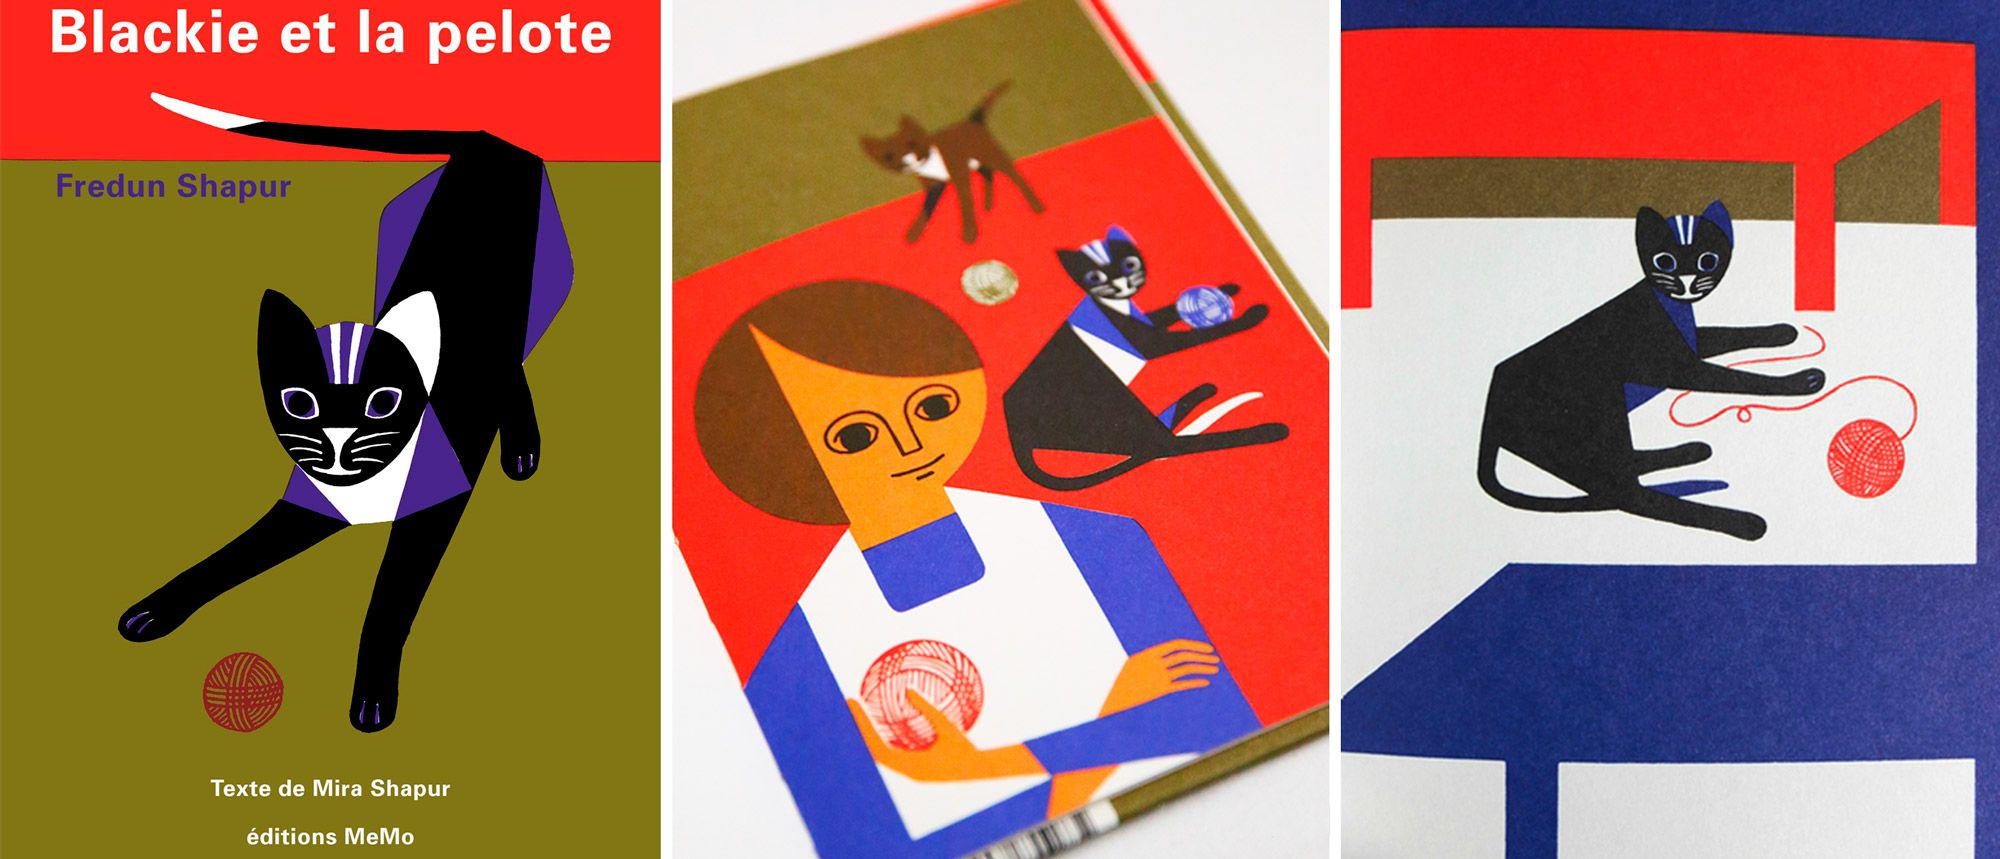 En Couverture C Fredun Shapur Pour Creative Playthings 1971 Si L On Parle Souvent De Bruno Munari Charles Et Ray Art Et Illustration Bruno Munari Eames